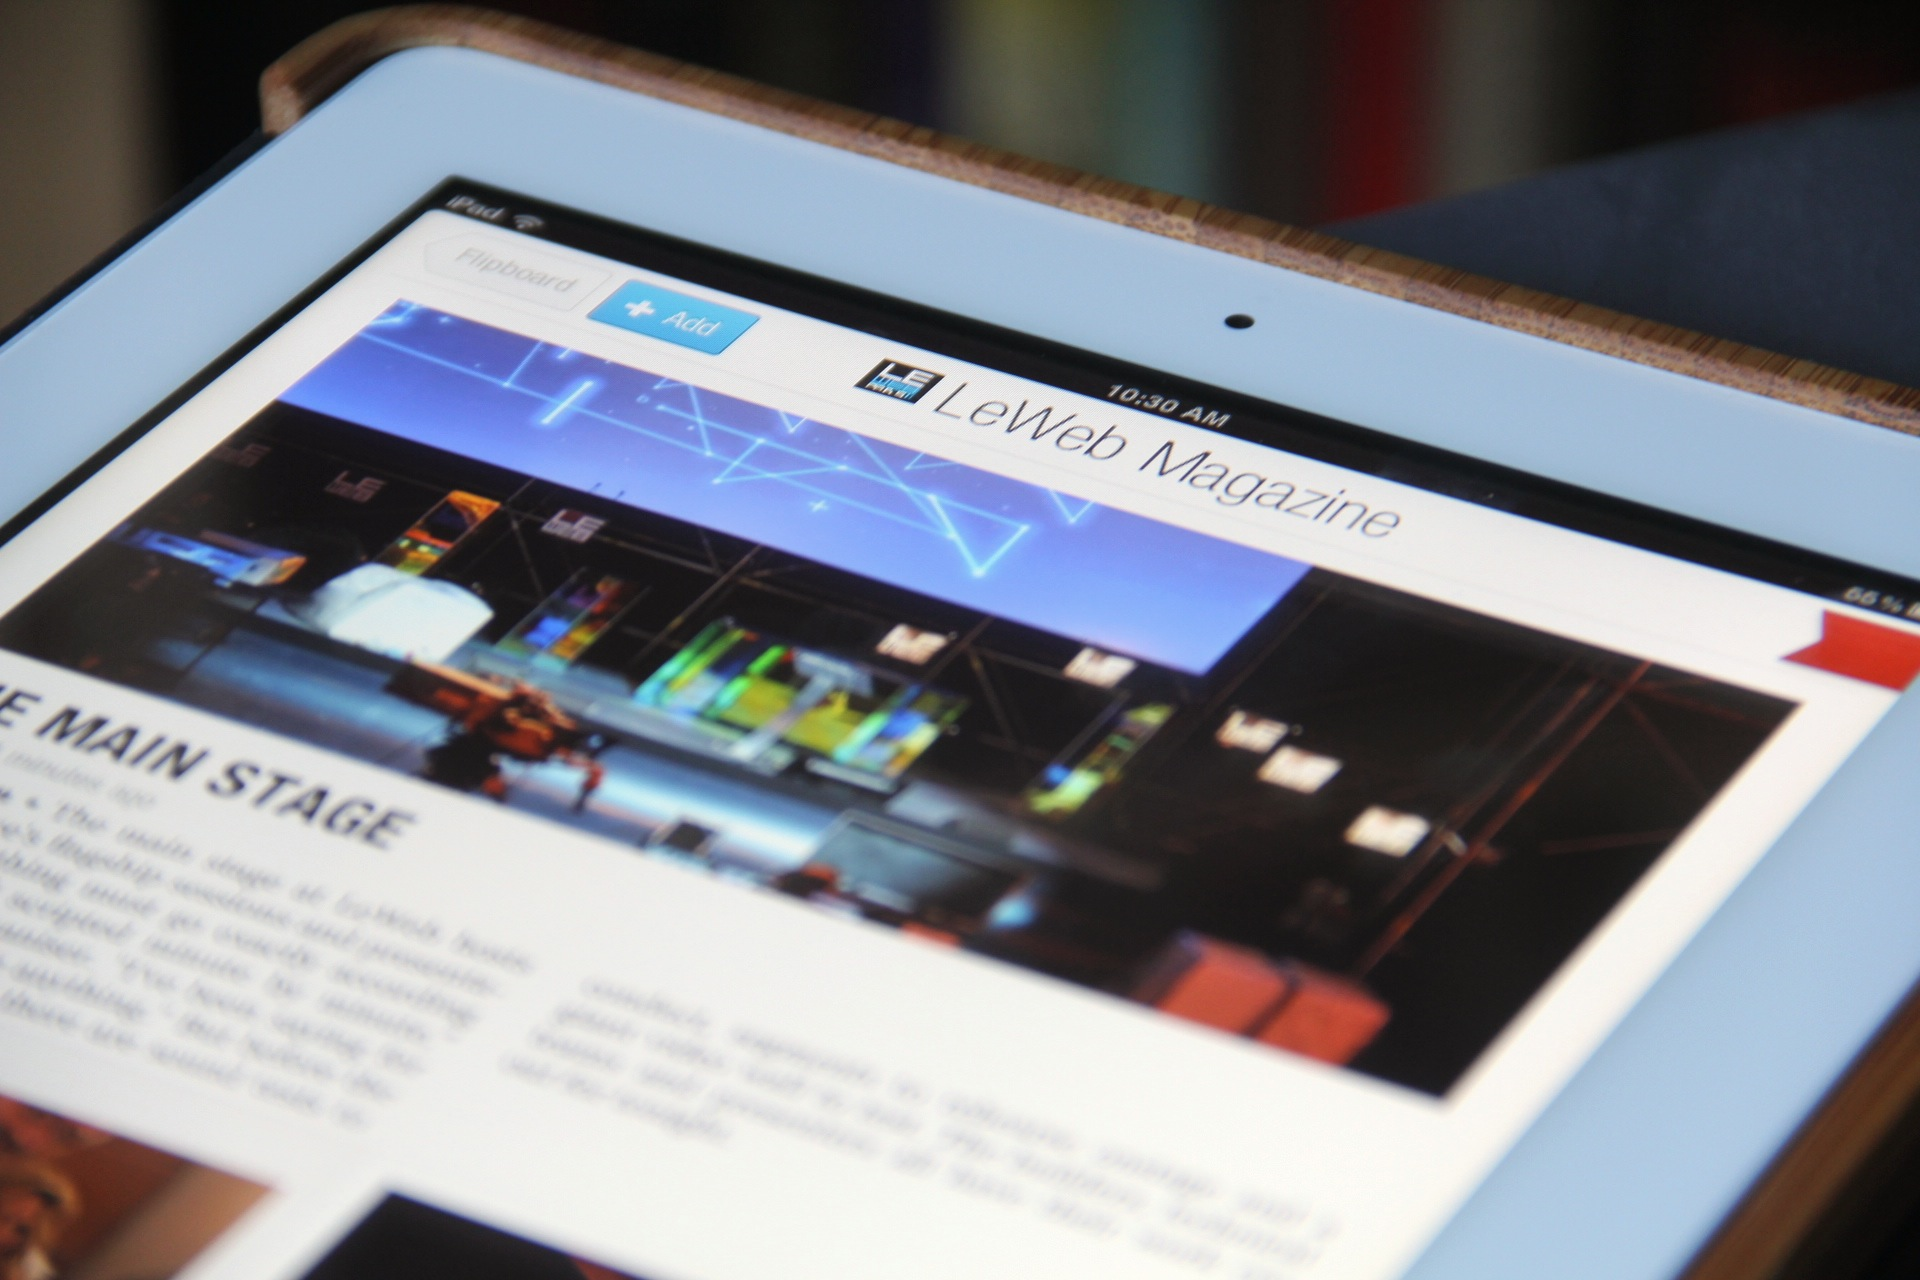 Experience LeWeb with the first ever conference magazine for Flipboard, from Fotopedia